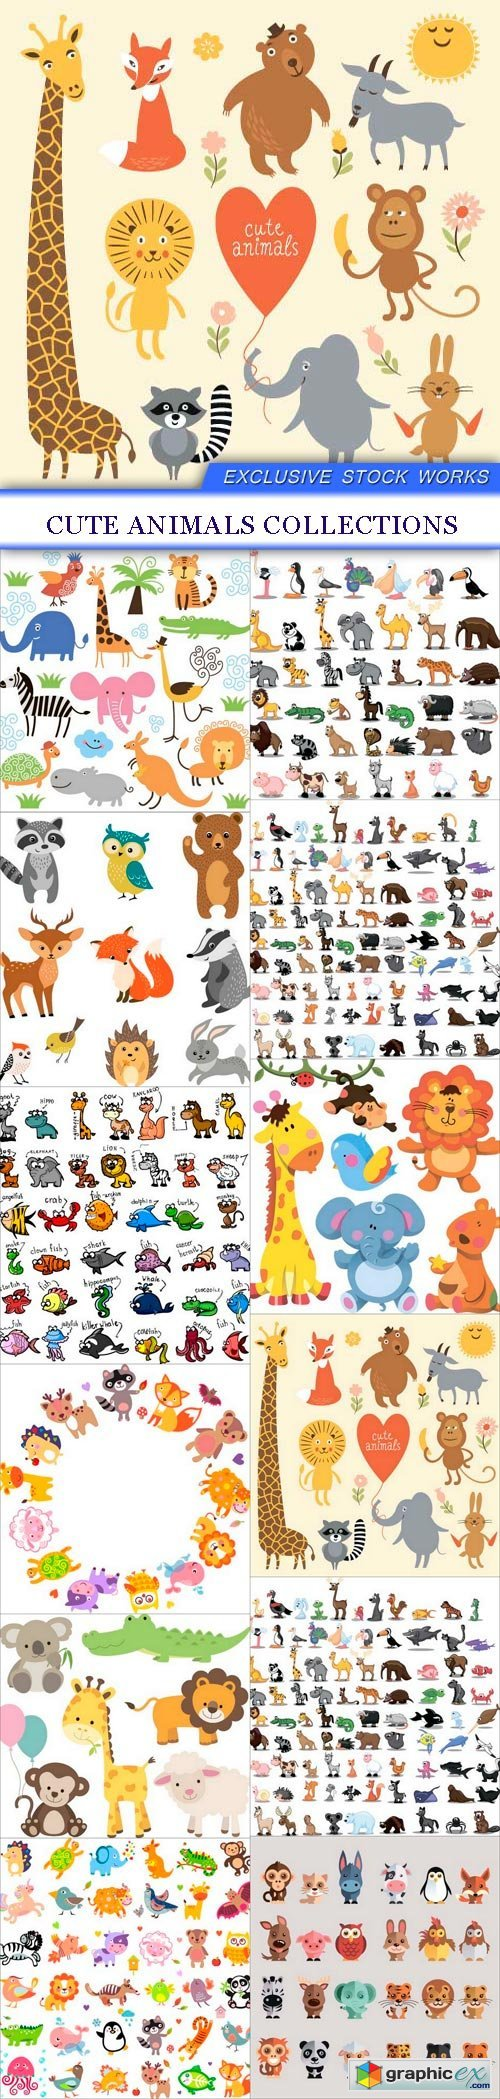 Cute Animals Collections 12X EPS